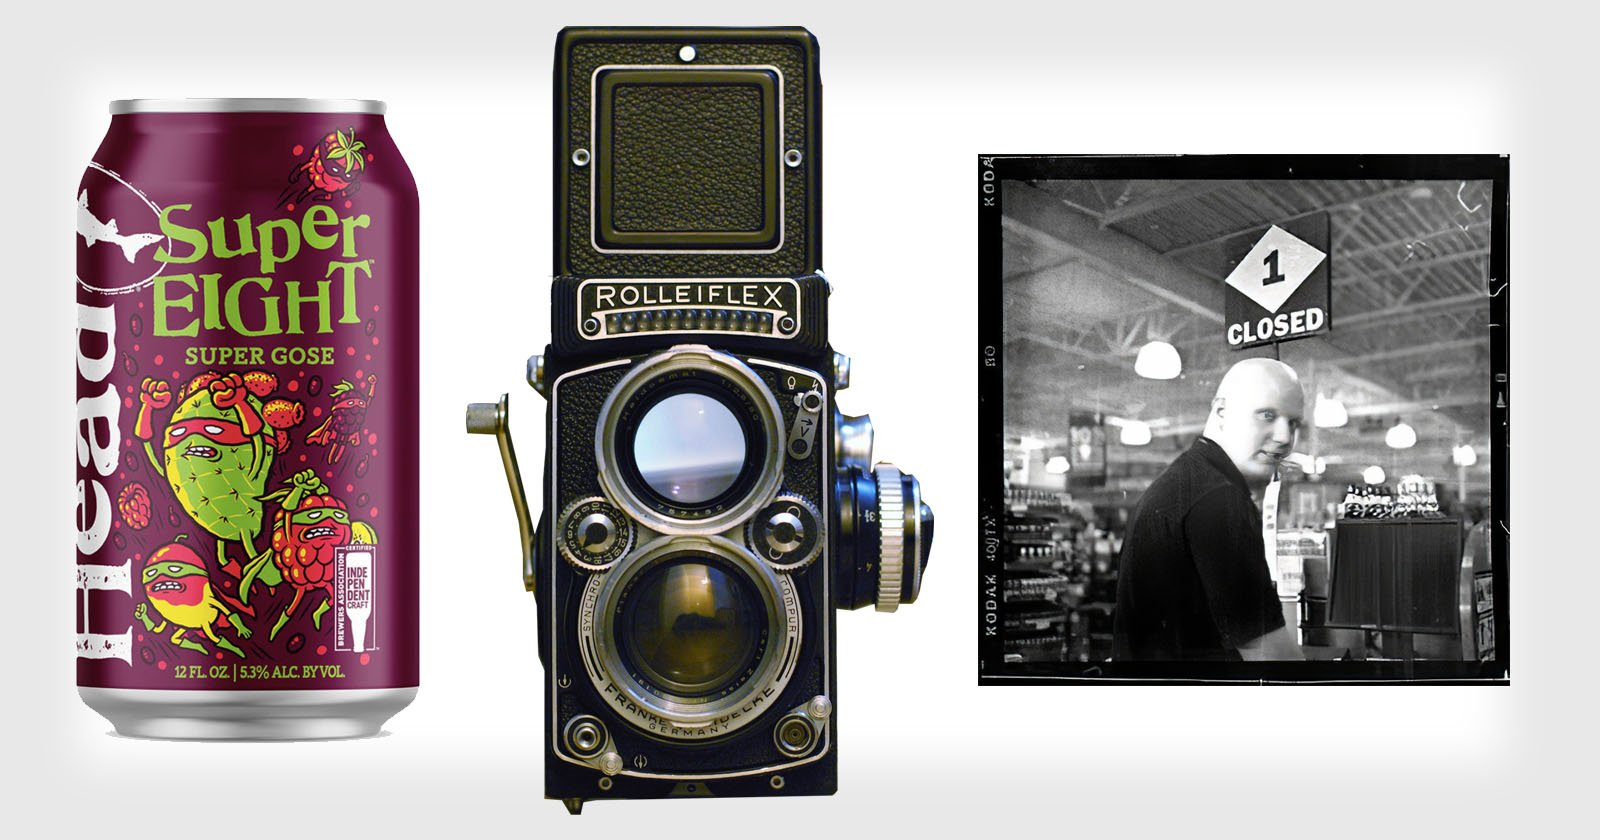 Developing Film With Beer and Other Nostalgia